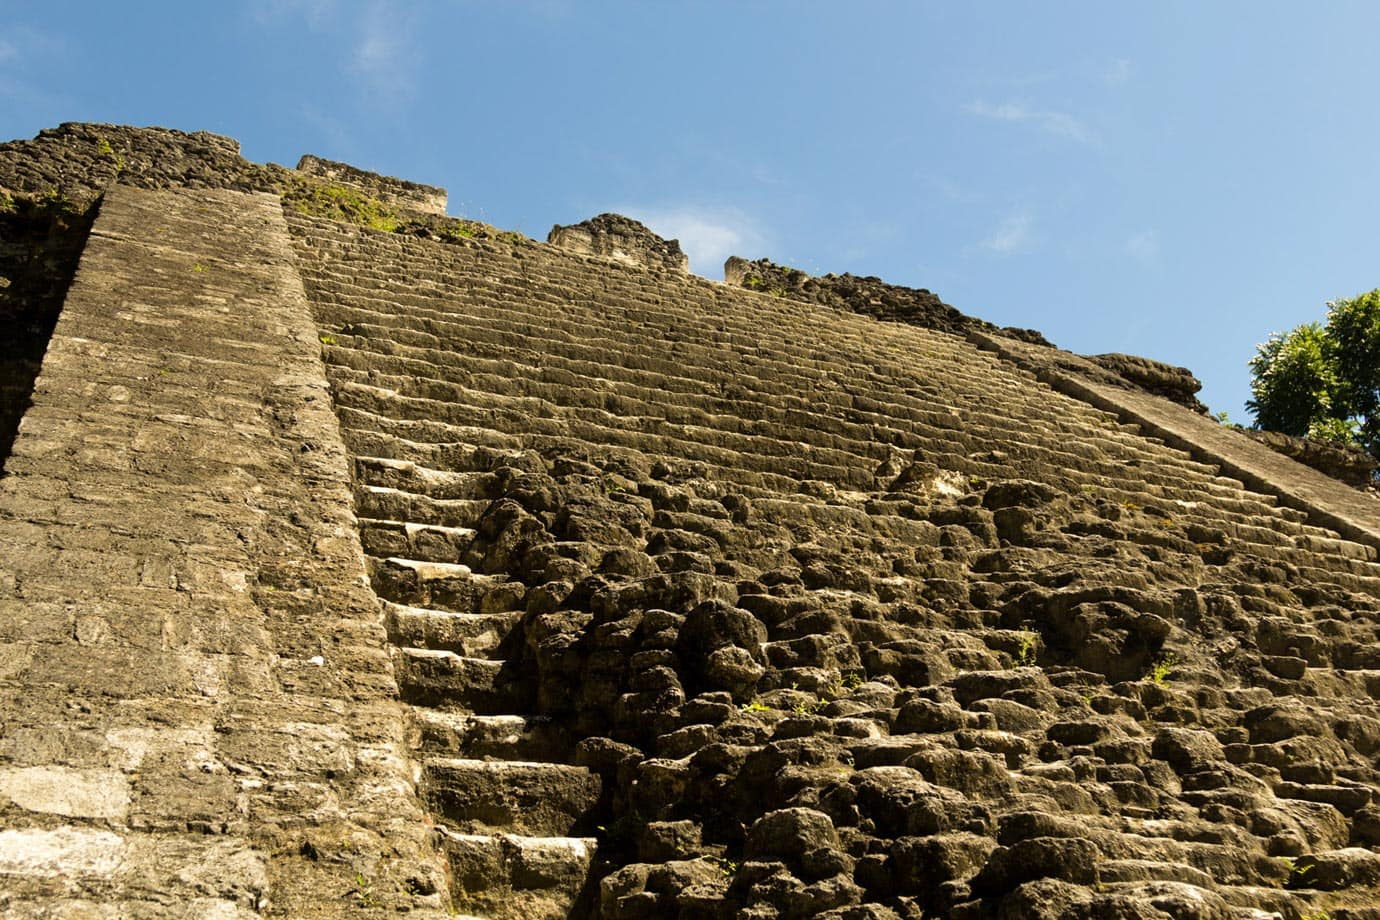 It is easy to forget that there are thousands of ruined structures within Tikal